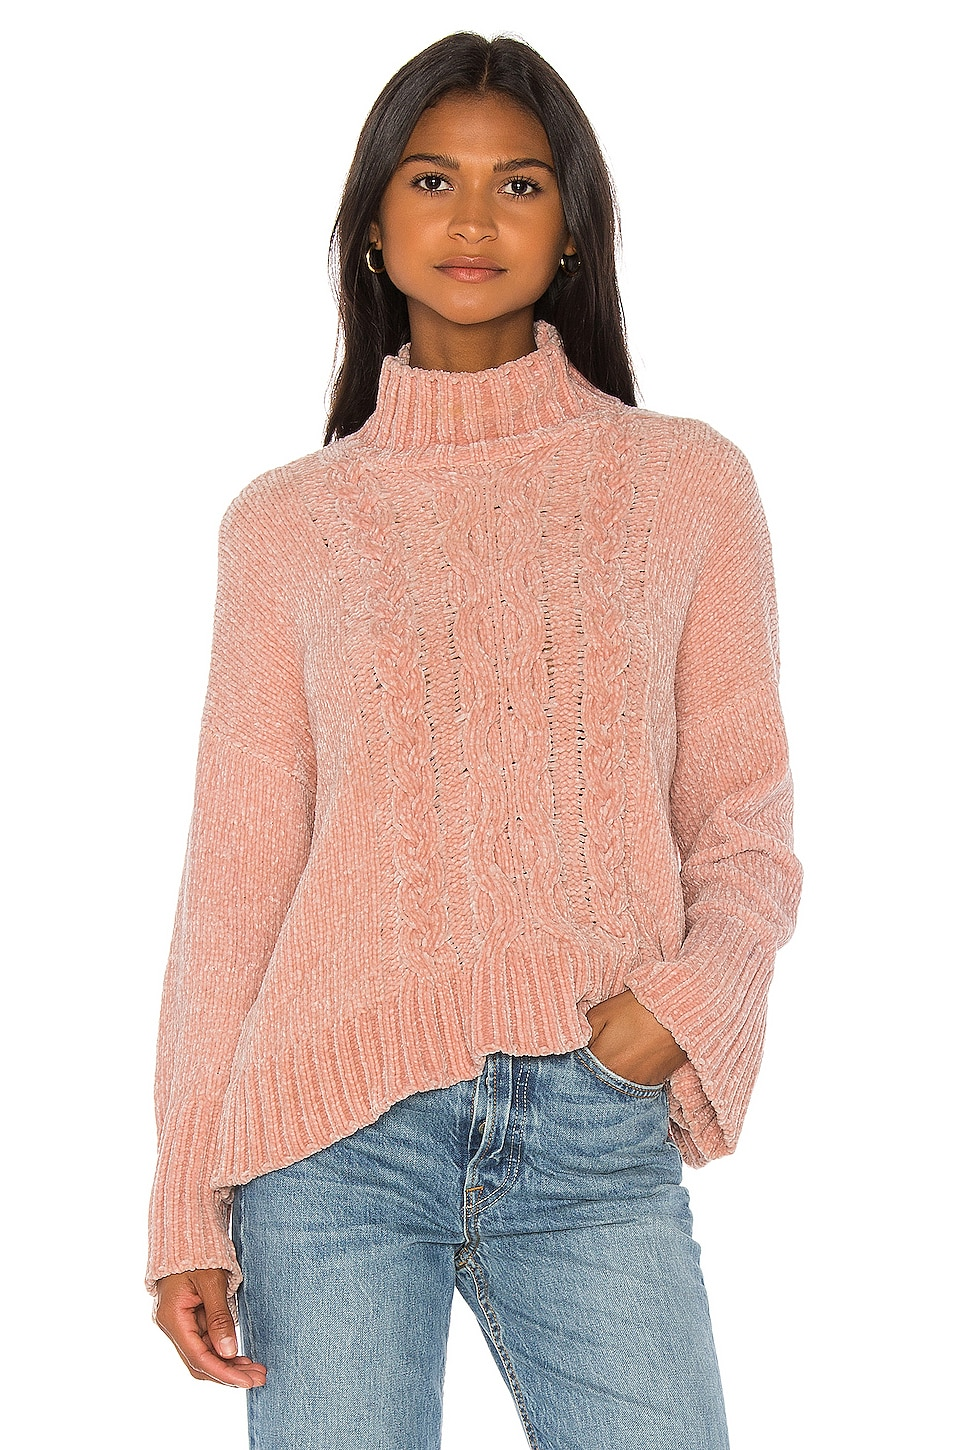 Central Park West Sasha Cable Sweater in Blush